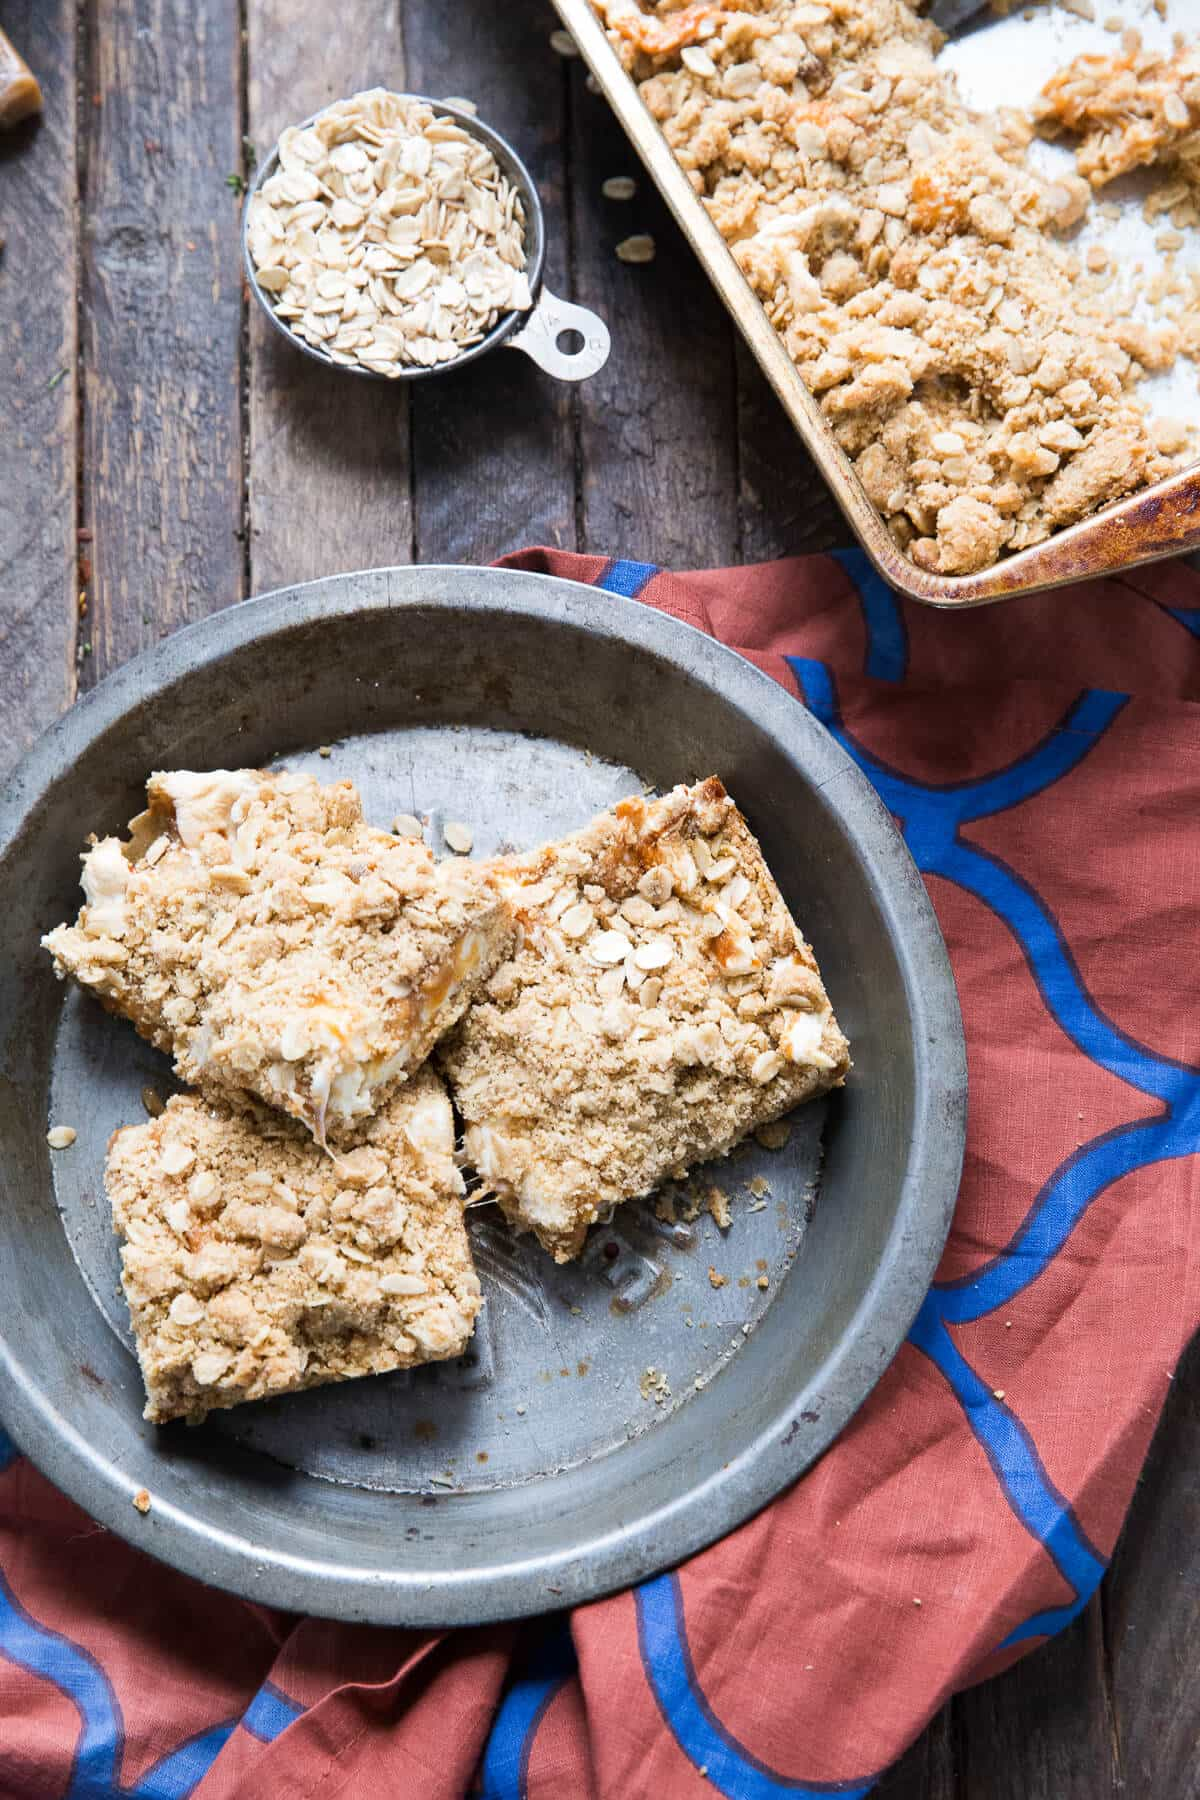 These oatmeal caramel bars are divine!